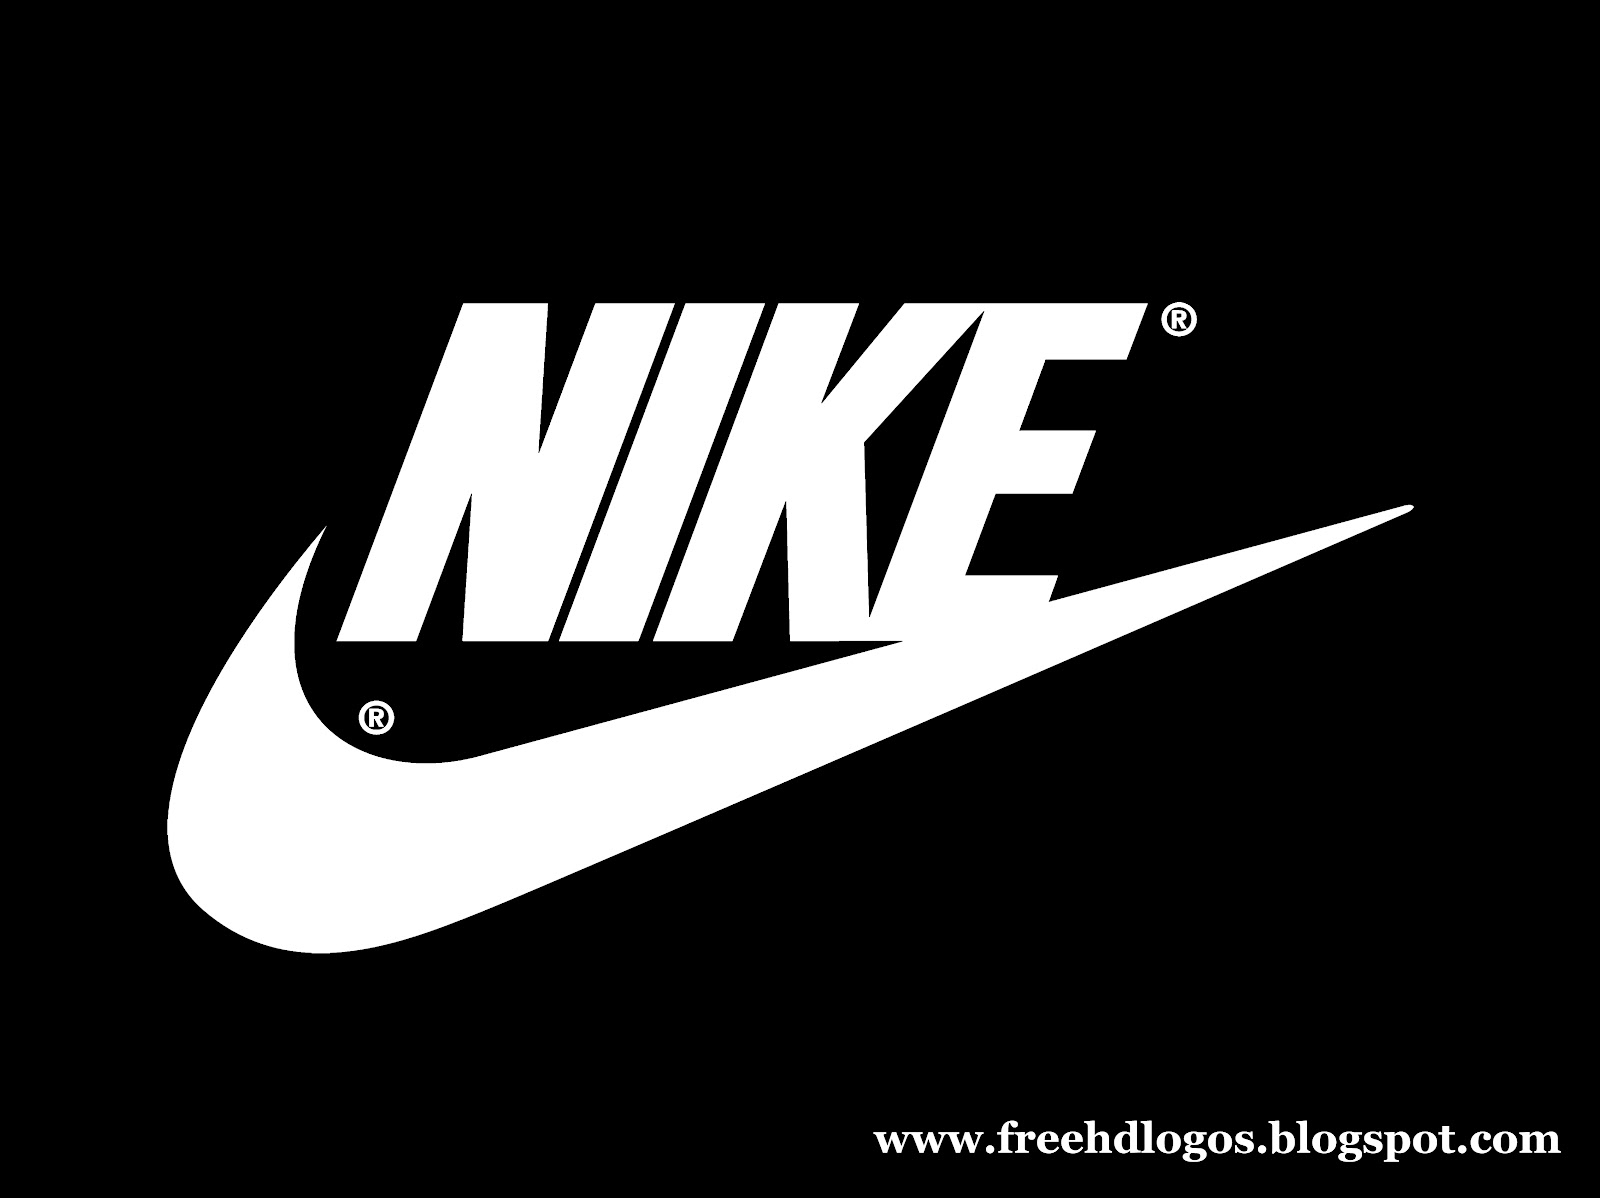 an essay on activists against the nike corporation Transnational company giants such as nike corporate social responsibility programs have the corporate media, academics, ngo activists and 'ethical.